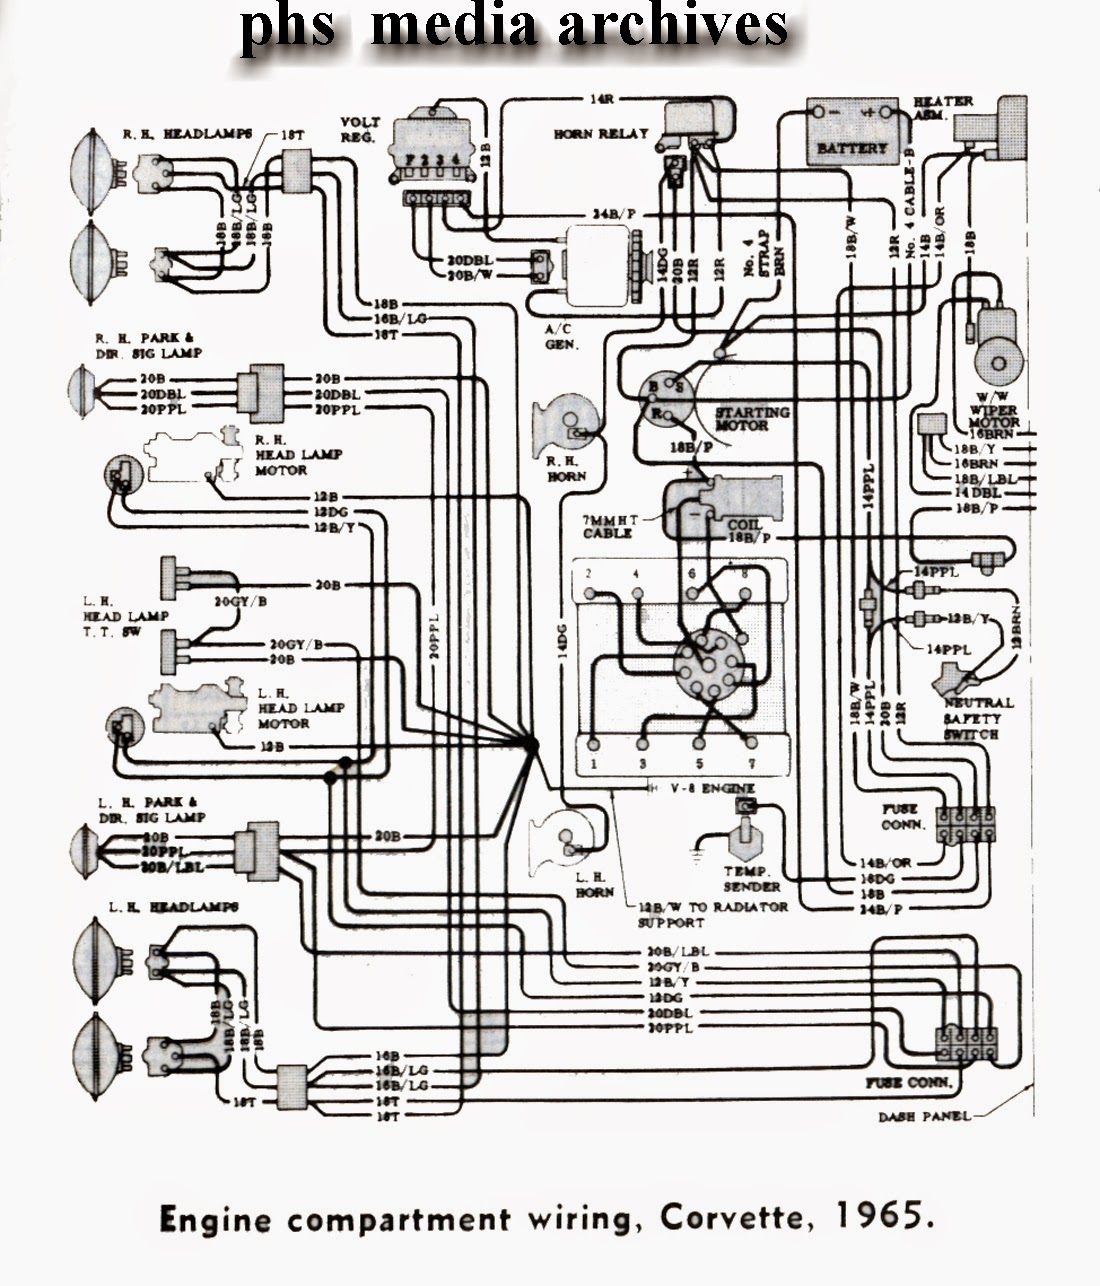 1975 Corvette Fuse Box Electronic Wiring Diagrams Diagram For 72 Chevy Nova 76 Opinions About U2022